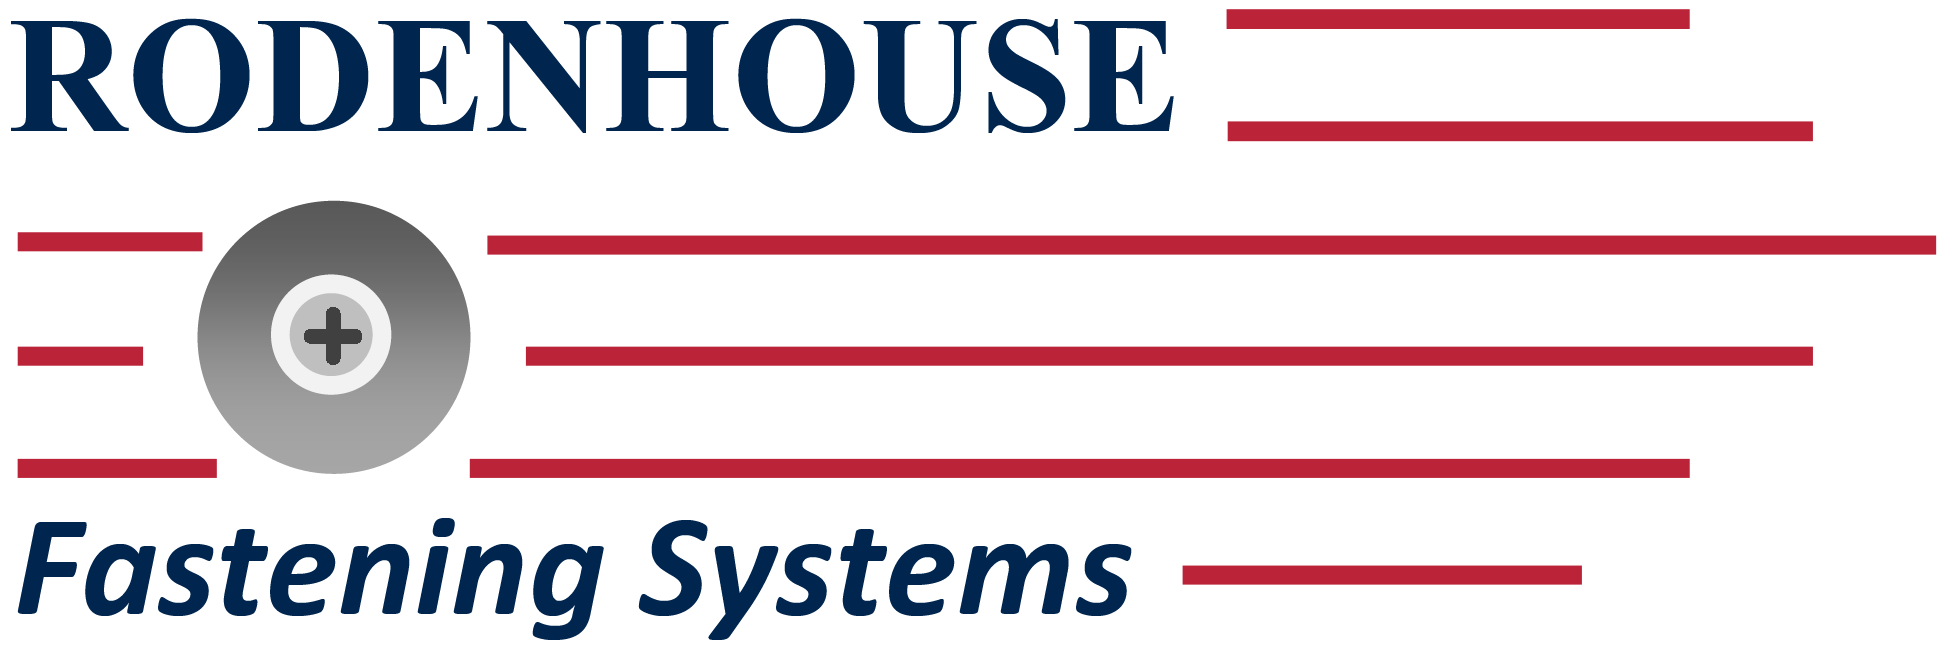 Rodenhouse Inc. logo.